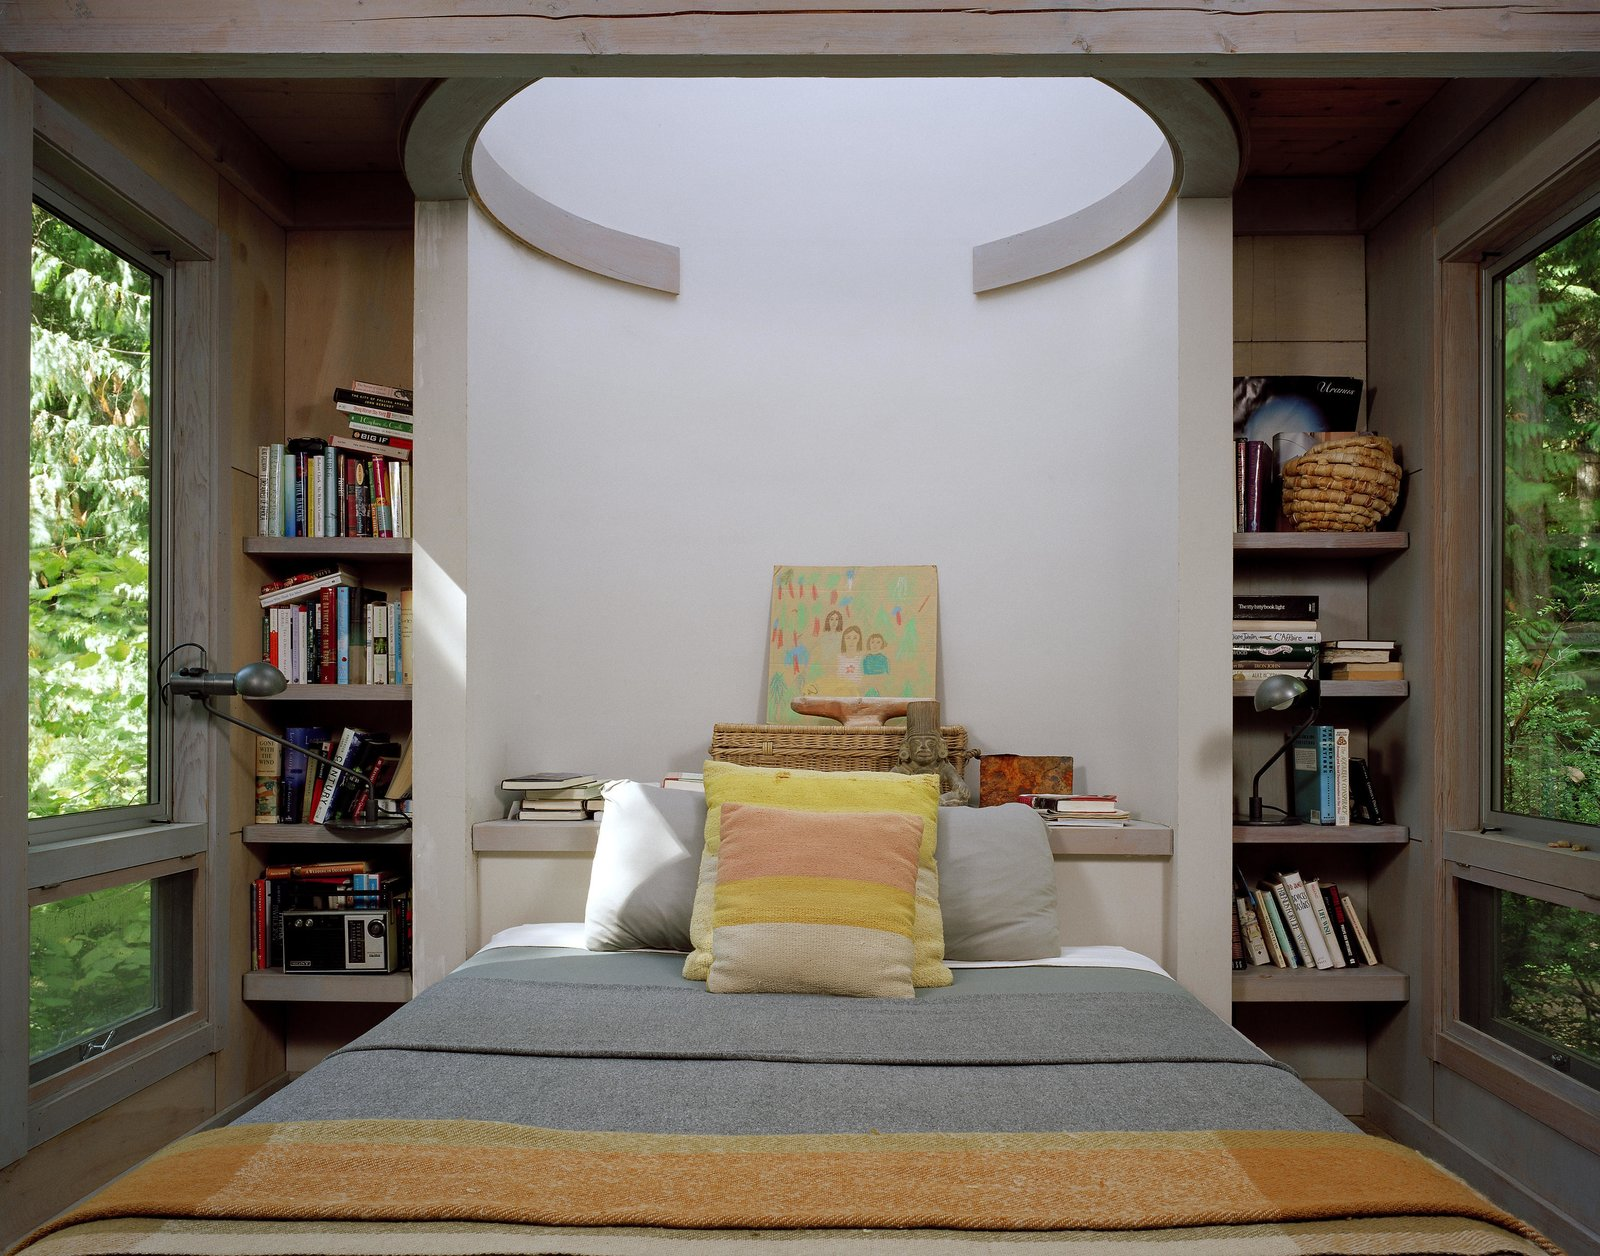 Cabin at Longbranch | Olson Kundig Tagged: Bedroom and Bed.  inspo by Nina Maurice Davies from Cabin in Longbranch